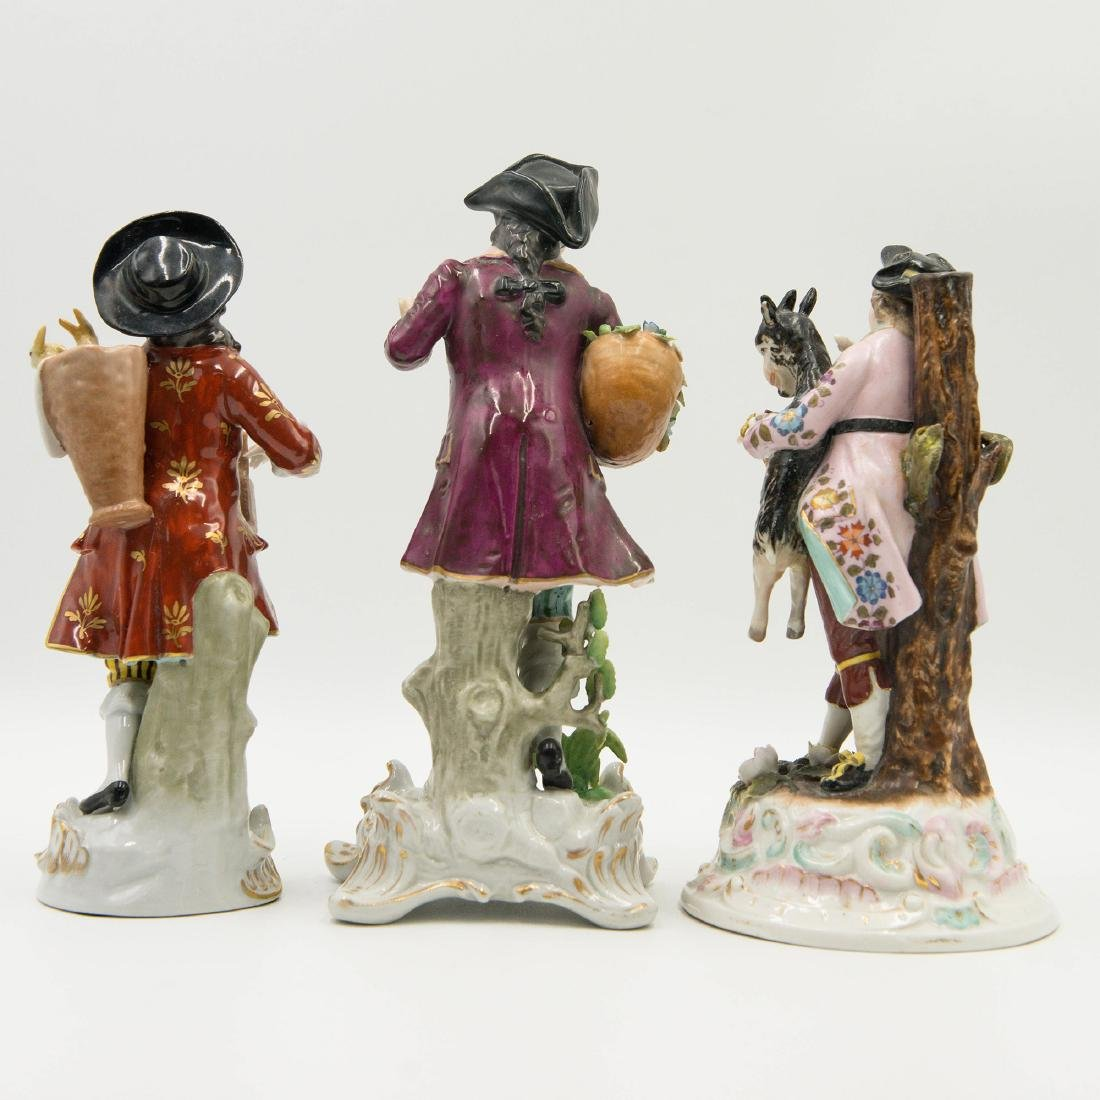 Group of 3 Sitzendorf German Porcelain Figurines - 2